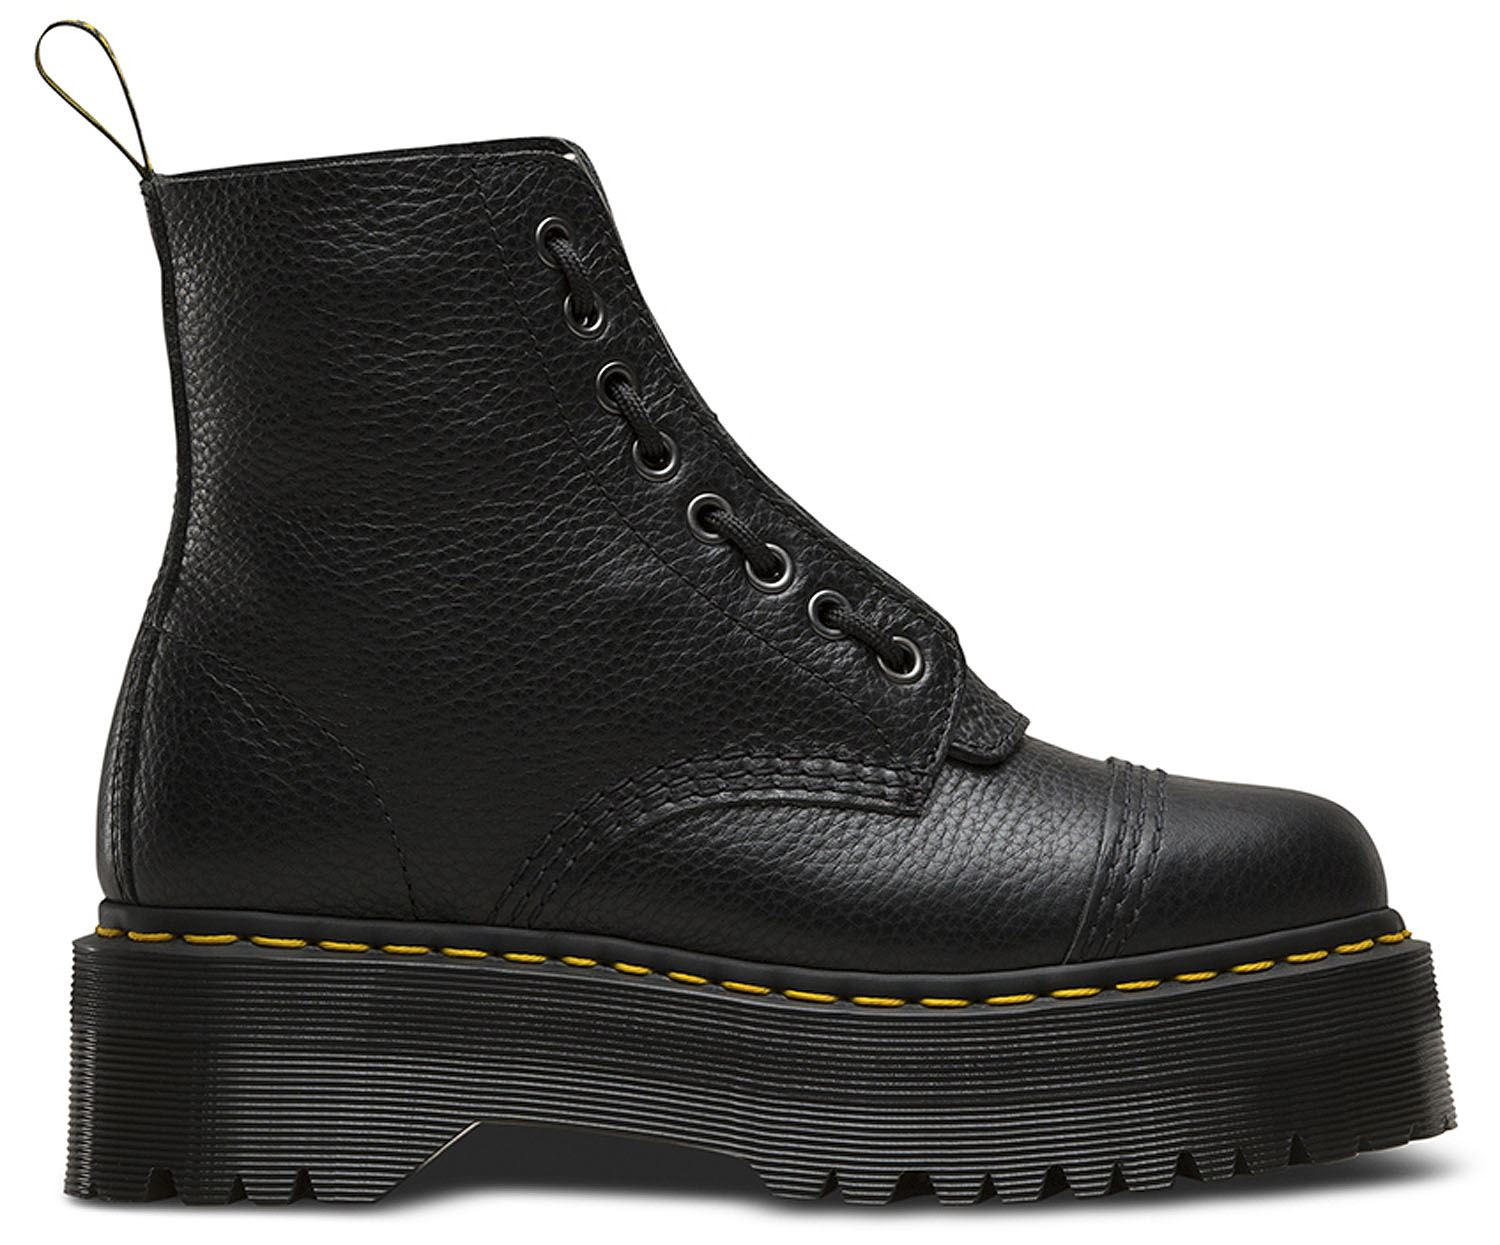 Dr Martens Ladies Sinclair Black Aunt Sally Leather Leather Leather Quad Platform Boots AW18 b85869